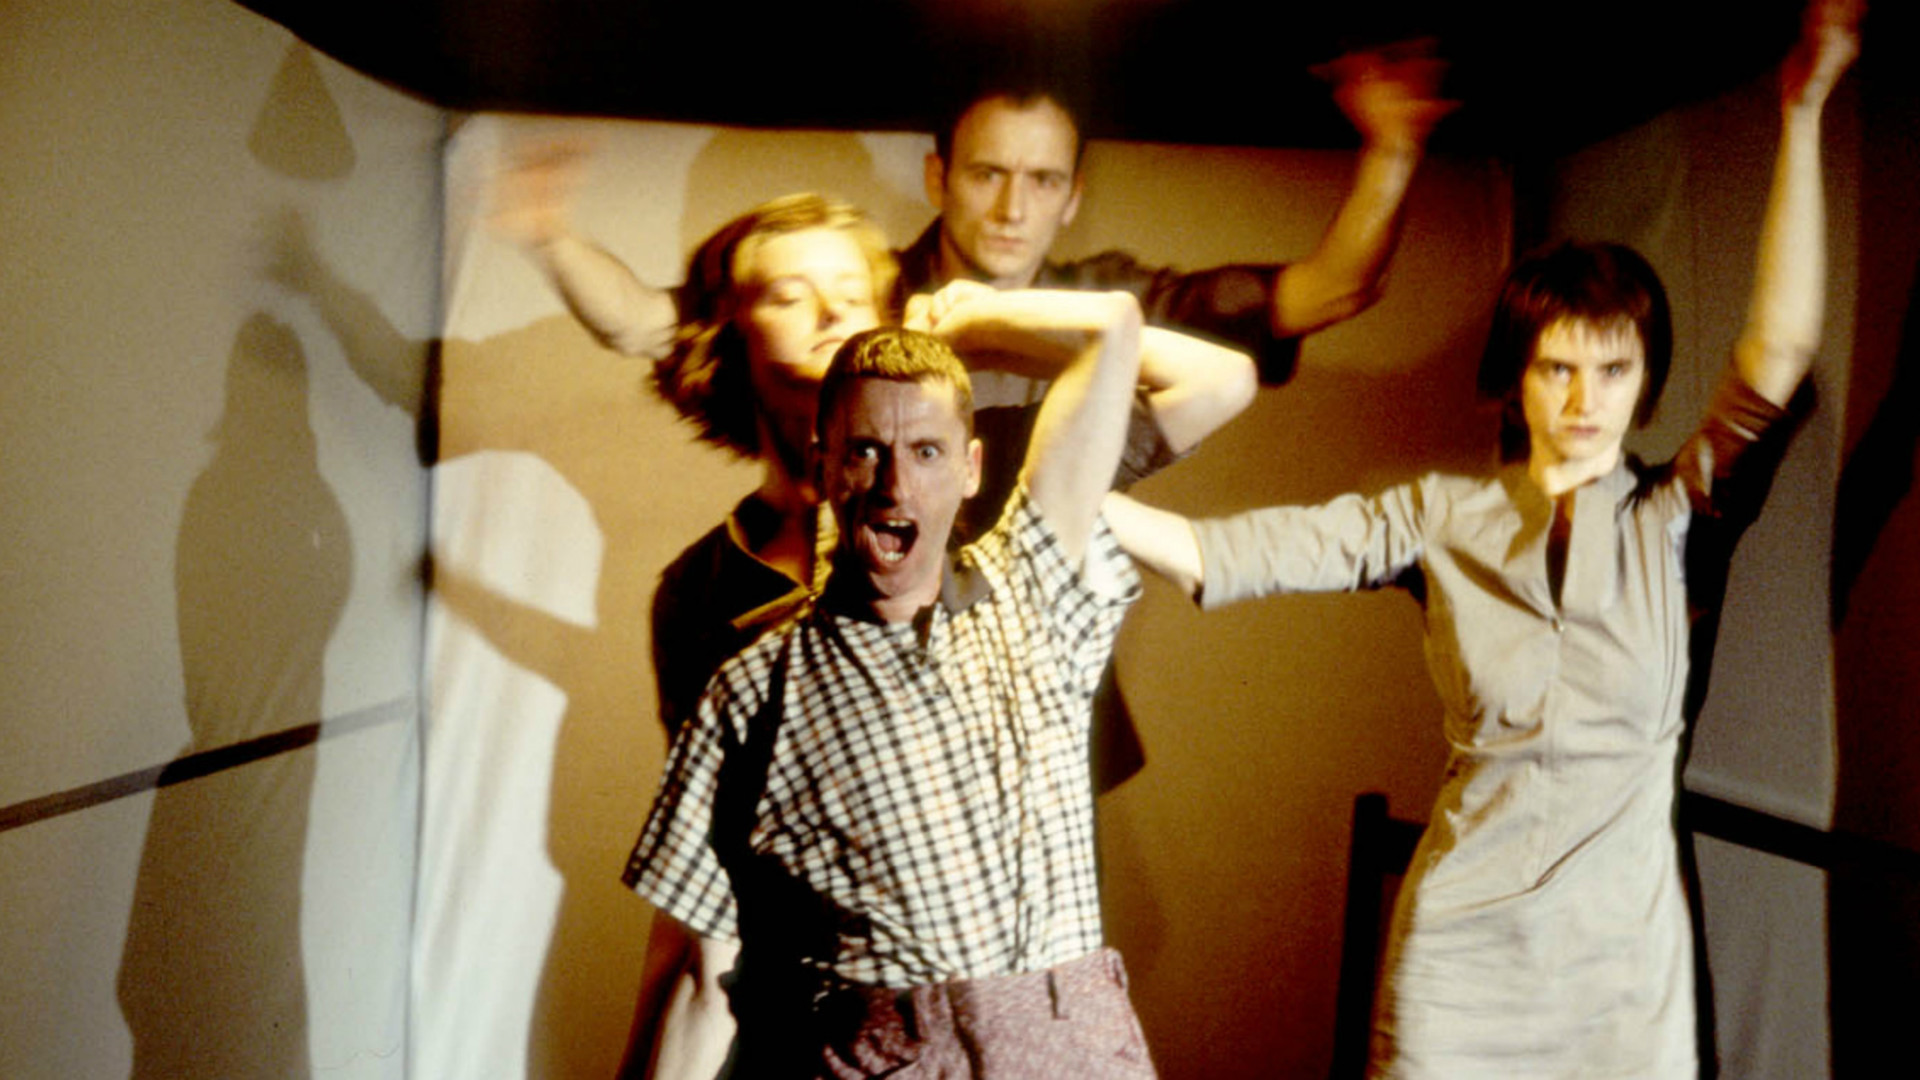 Four dancers in a small light room dressed in everyday clothes. Three wave their arms while one at the front appears to shout directly at us